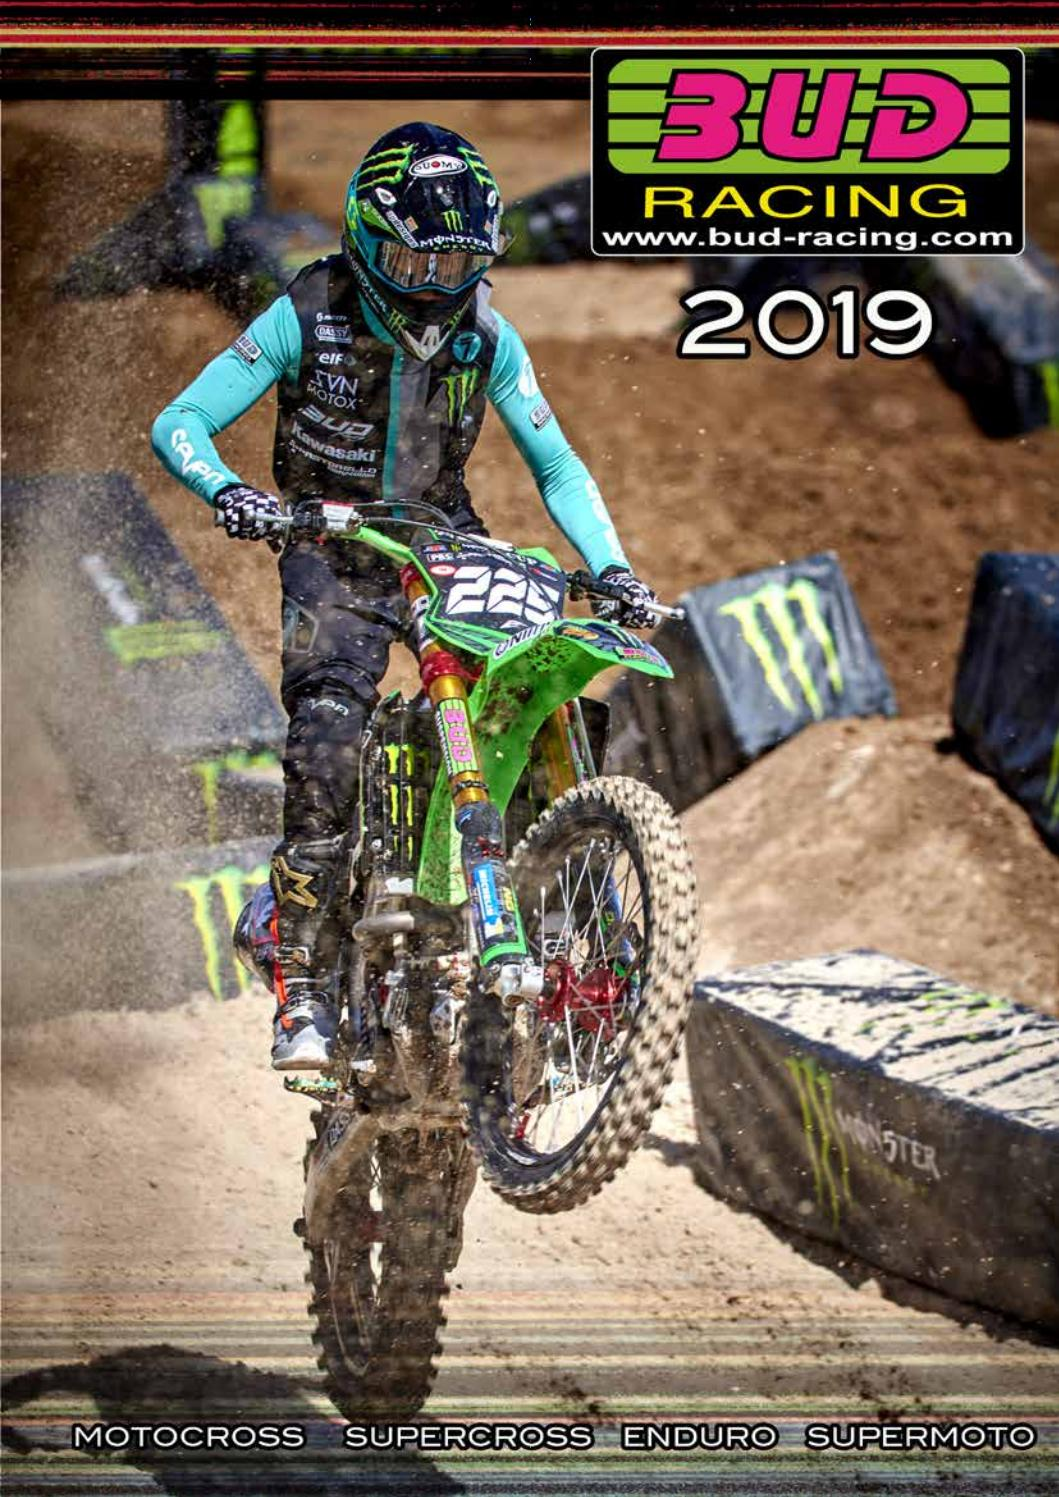 Catalogue Bud Racing 2019 by BUD RACING - issuu